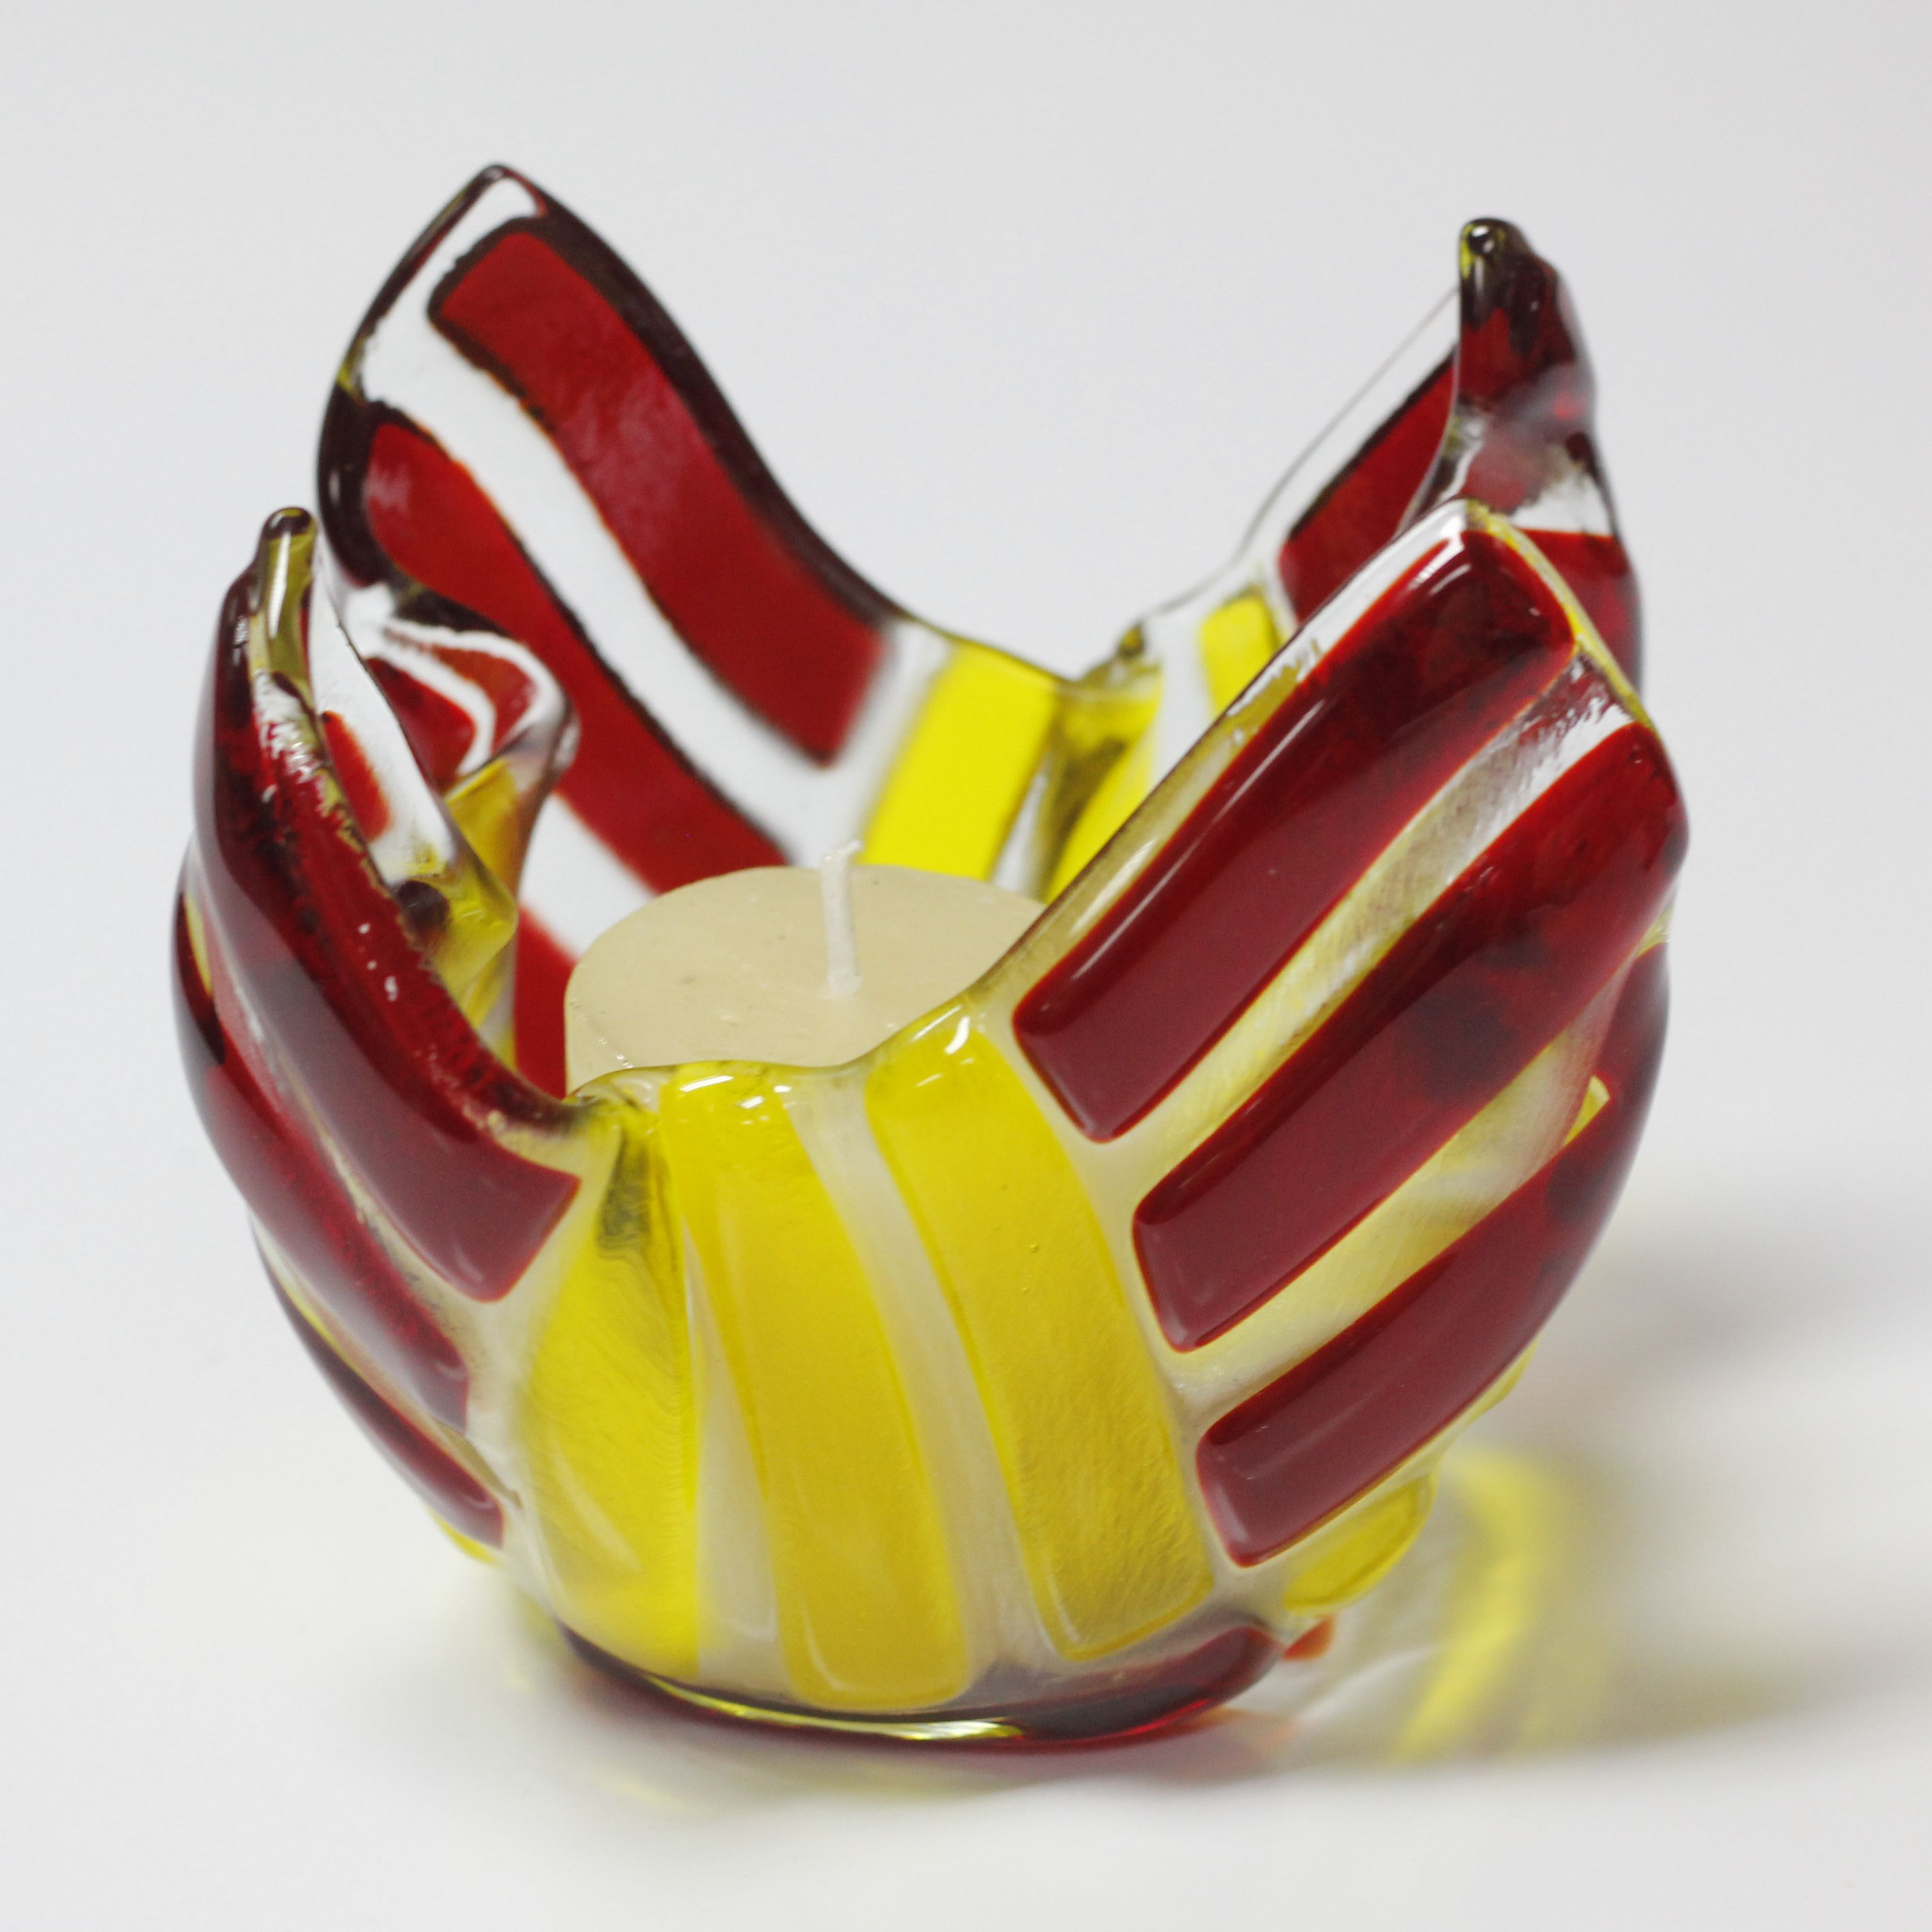 Cheeky red and yellow spectrum used on this candle light holder